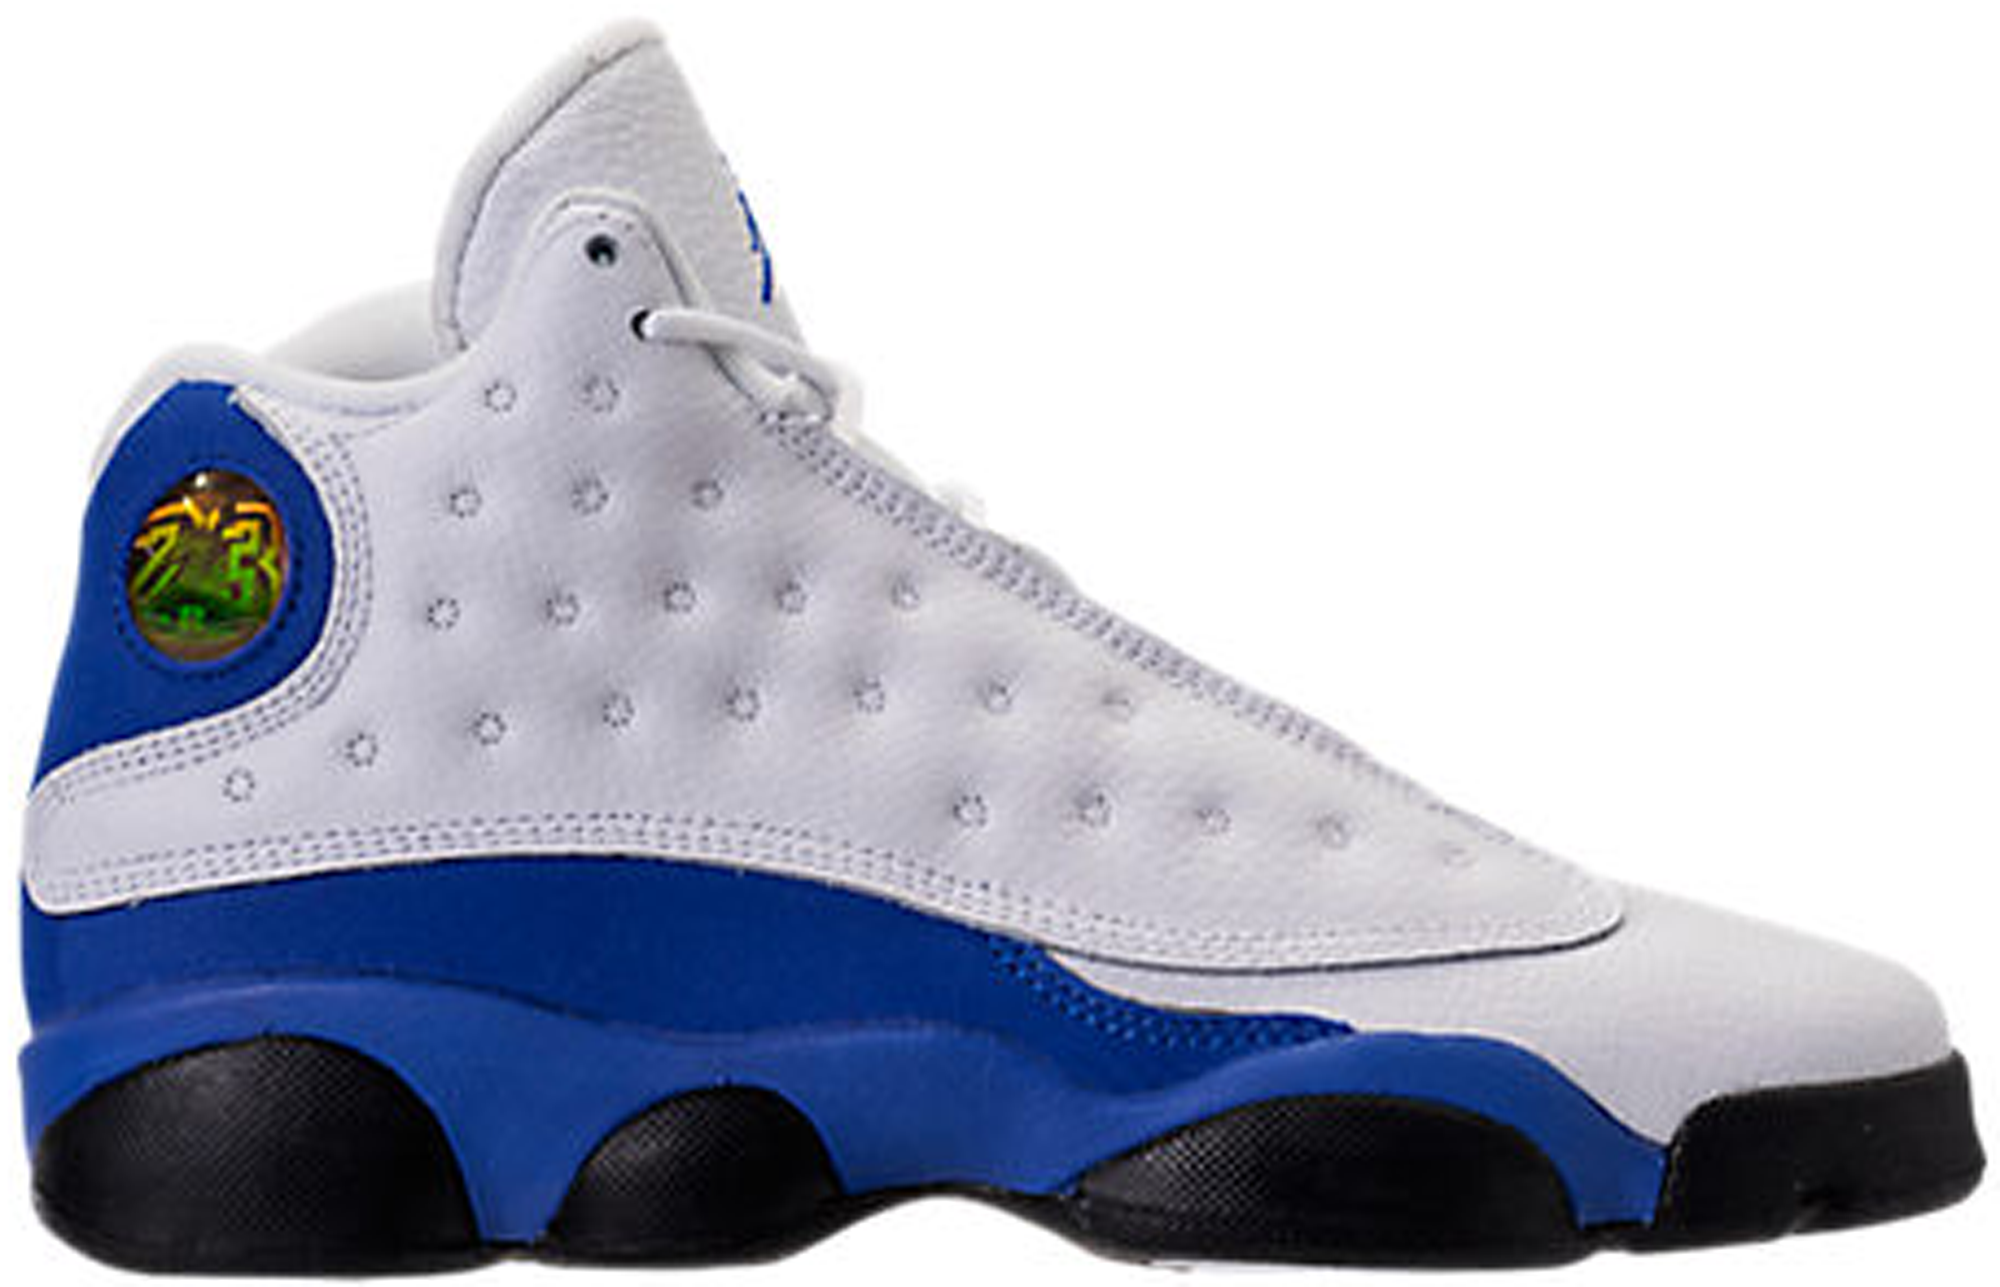 Jordan 13 Retro White Hyper Royal Black (GS)